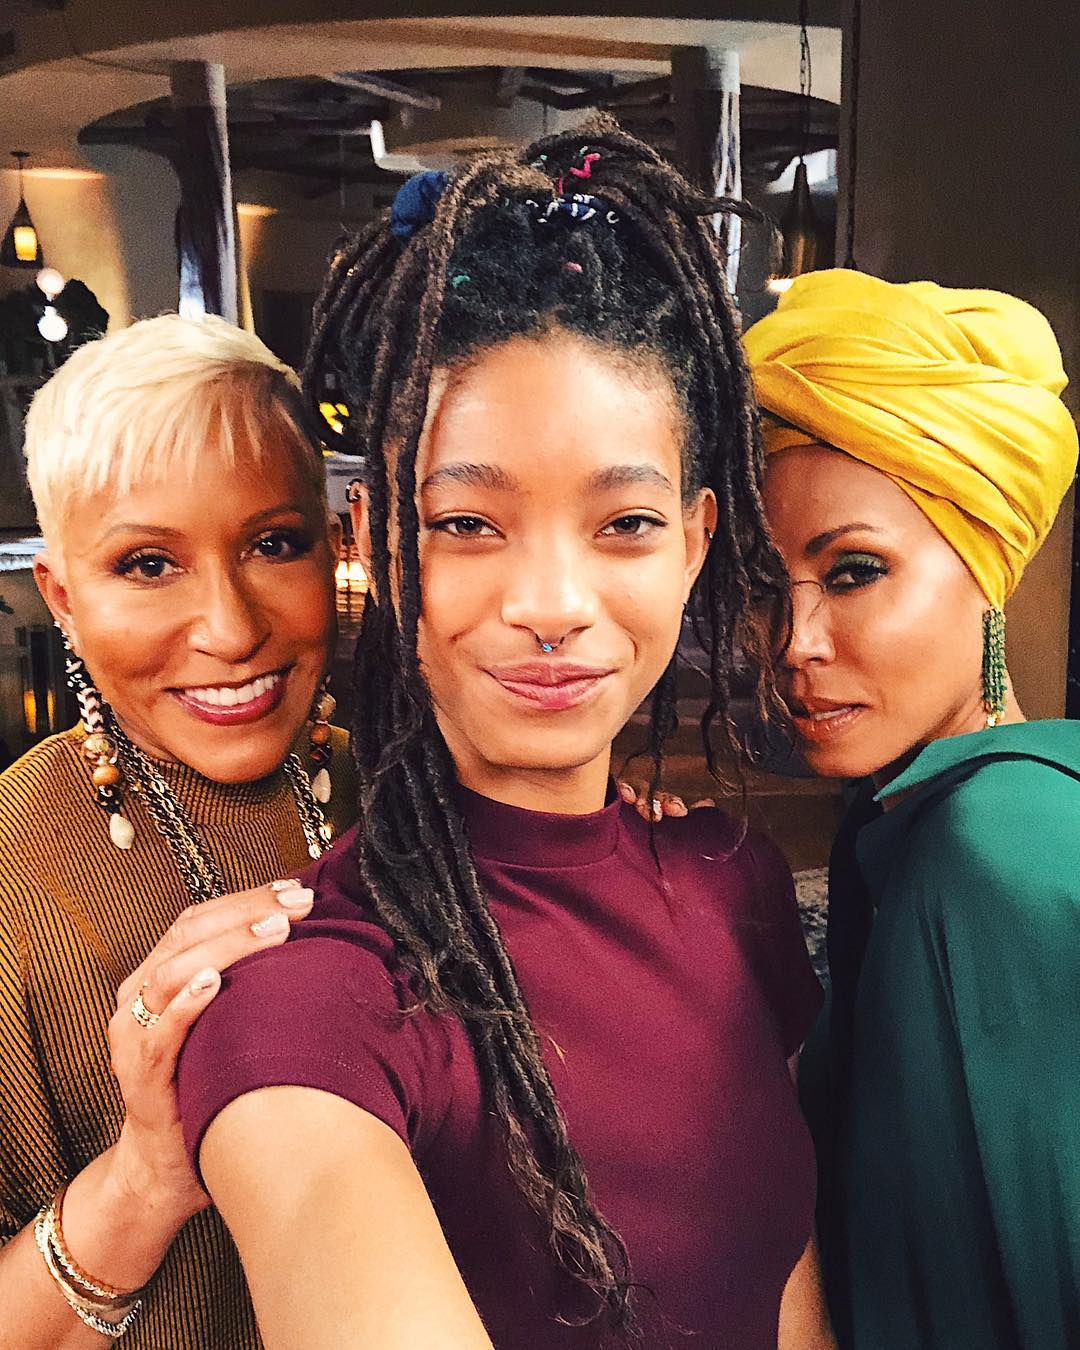 Willow Smith Talks Instagram And Body Image On Red Table Talk